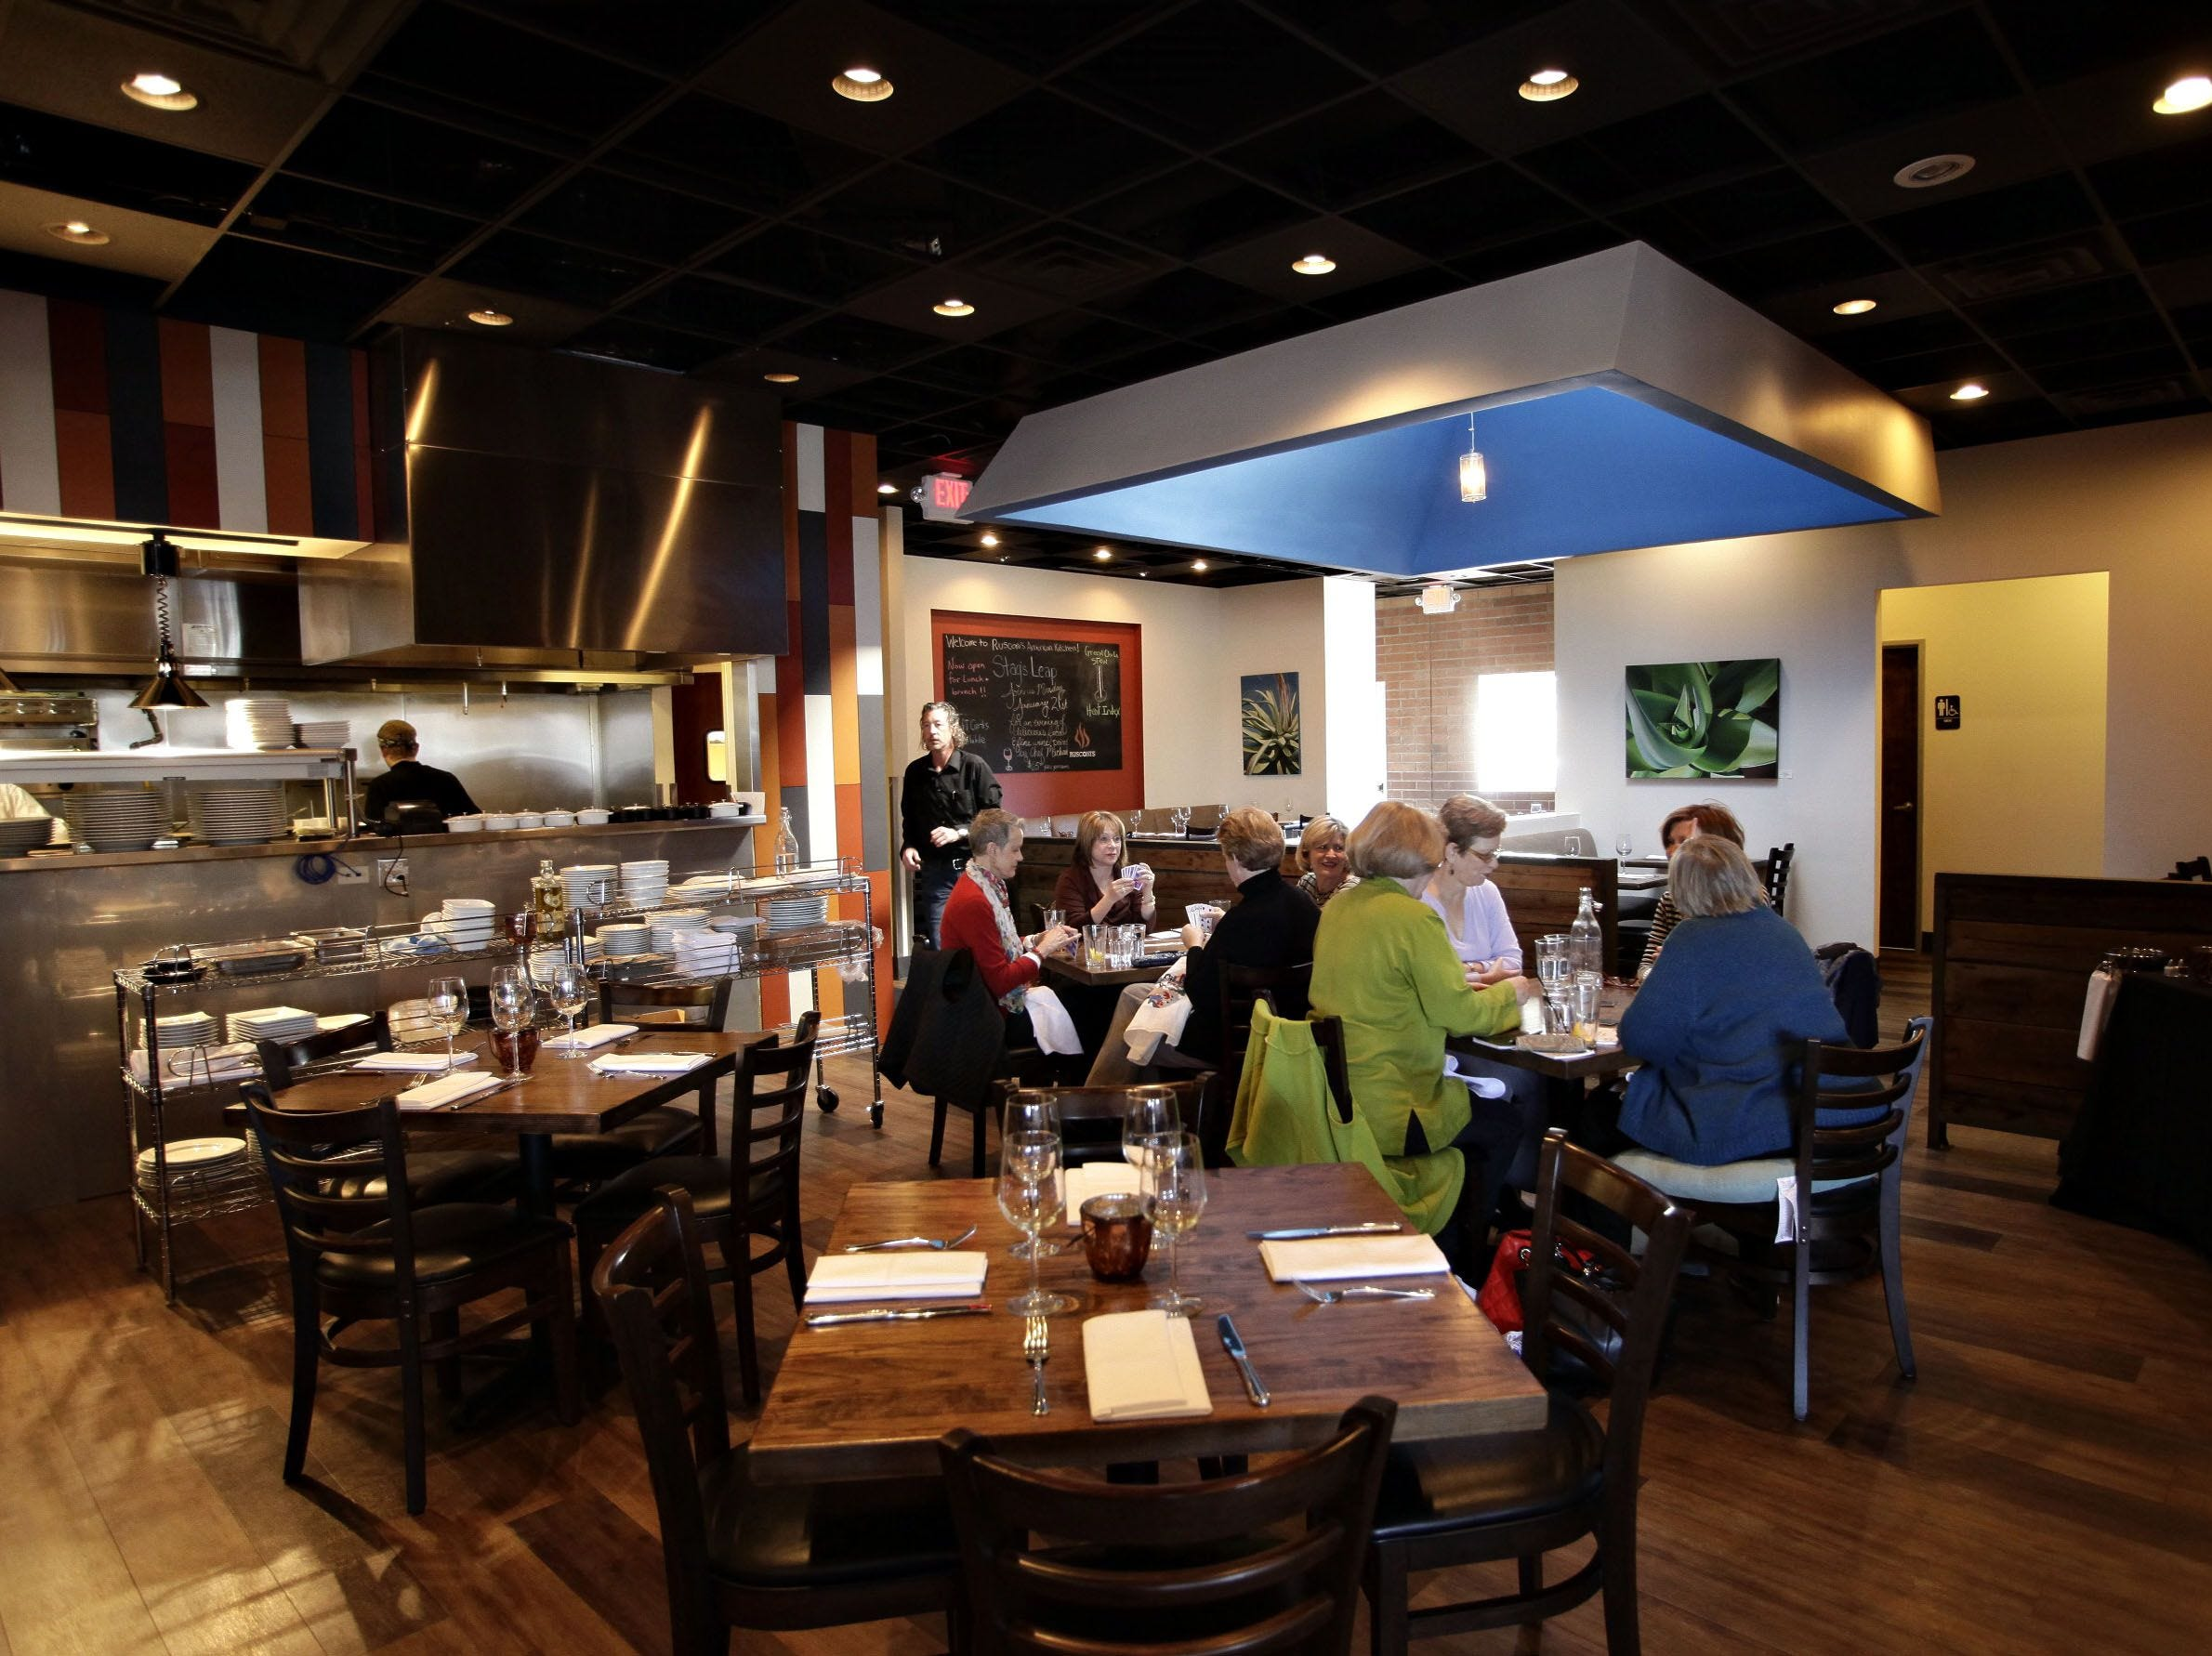 RUSCONI'S AMERICAN KITCHEN | From 10 a.m.-3 p.m. a three-course brunch ($59) includes options such as chilled carrot and apple soup, Arizona desert sweet shrimp and spring tomato salad, cast iron short rib hash, pan-roasted California halibut with spring pea risotto, and dark chocolate budino. DETAILS: 10637 N. Tatum Blvd., Phoenix. 480-483-0009, rusconiskitchen.com